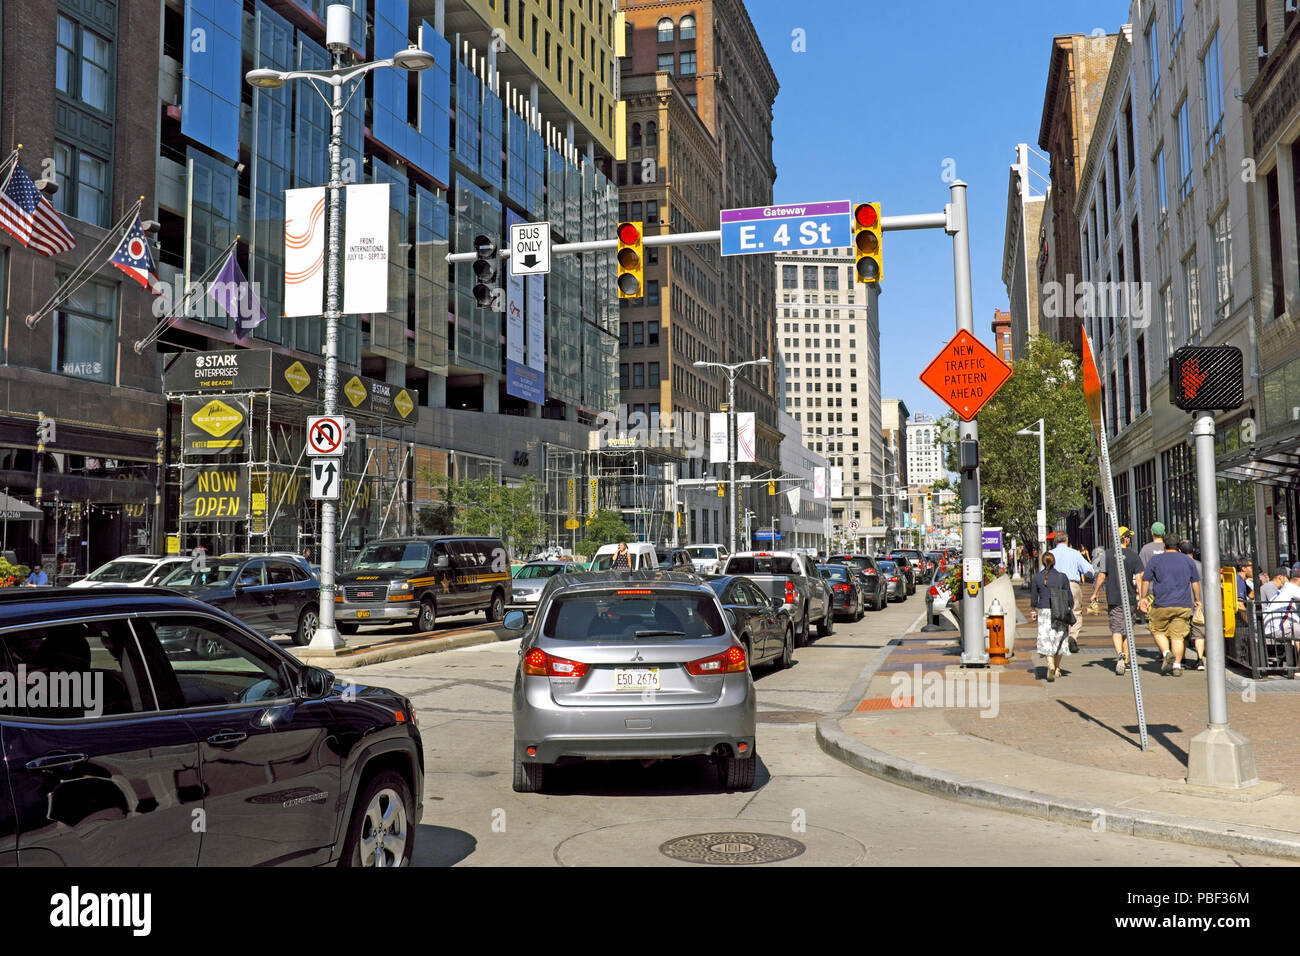 Busy downtown Cleveland, Ohio at the intersection of the pedestrian-only East 4th Street and the traffic-clogged Euclid Avenue corridor. - Stock Image